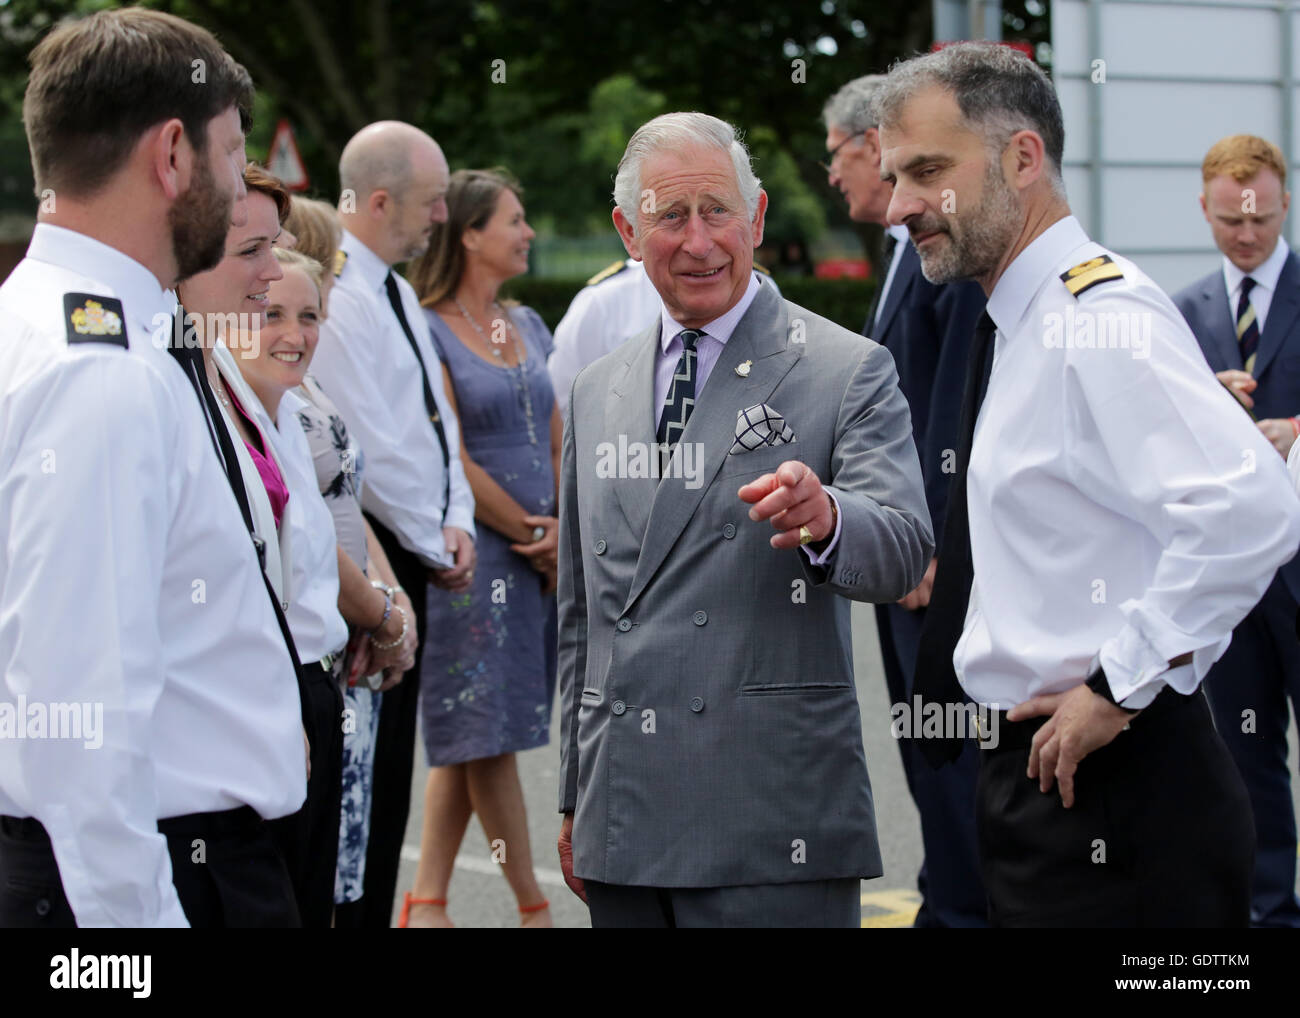 The Prince of Wales (centre), Admiral of the Fleet, meets naval personnel during a visit to Her Majesty's Naval - Stock Image